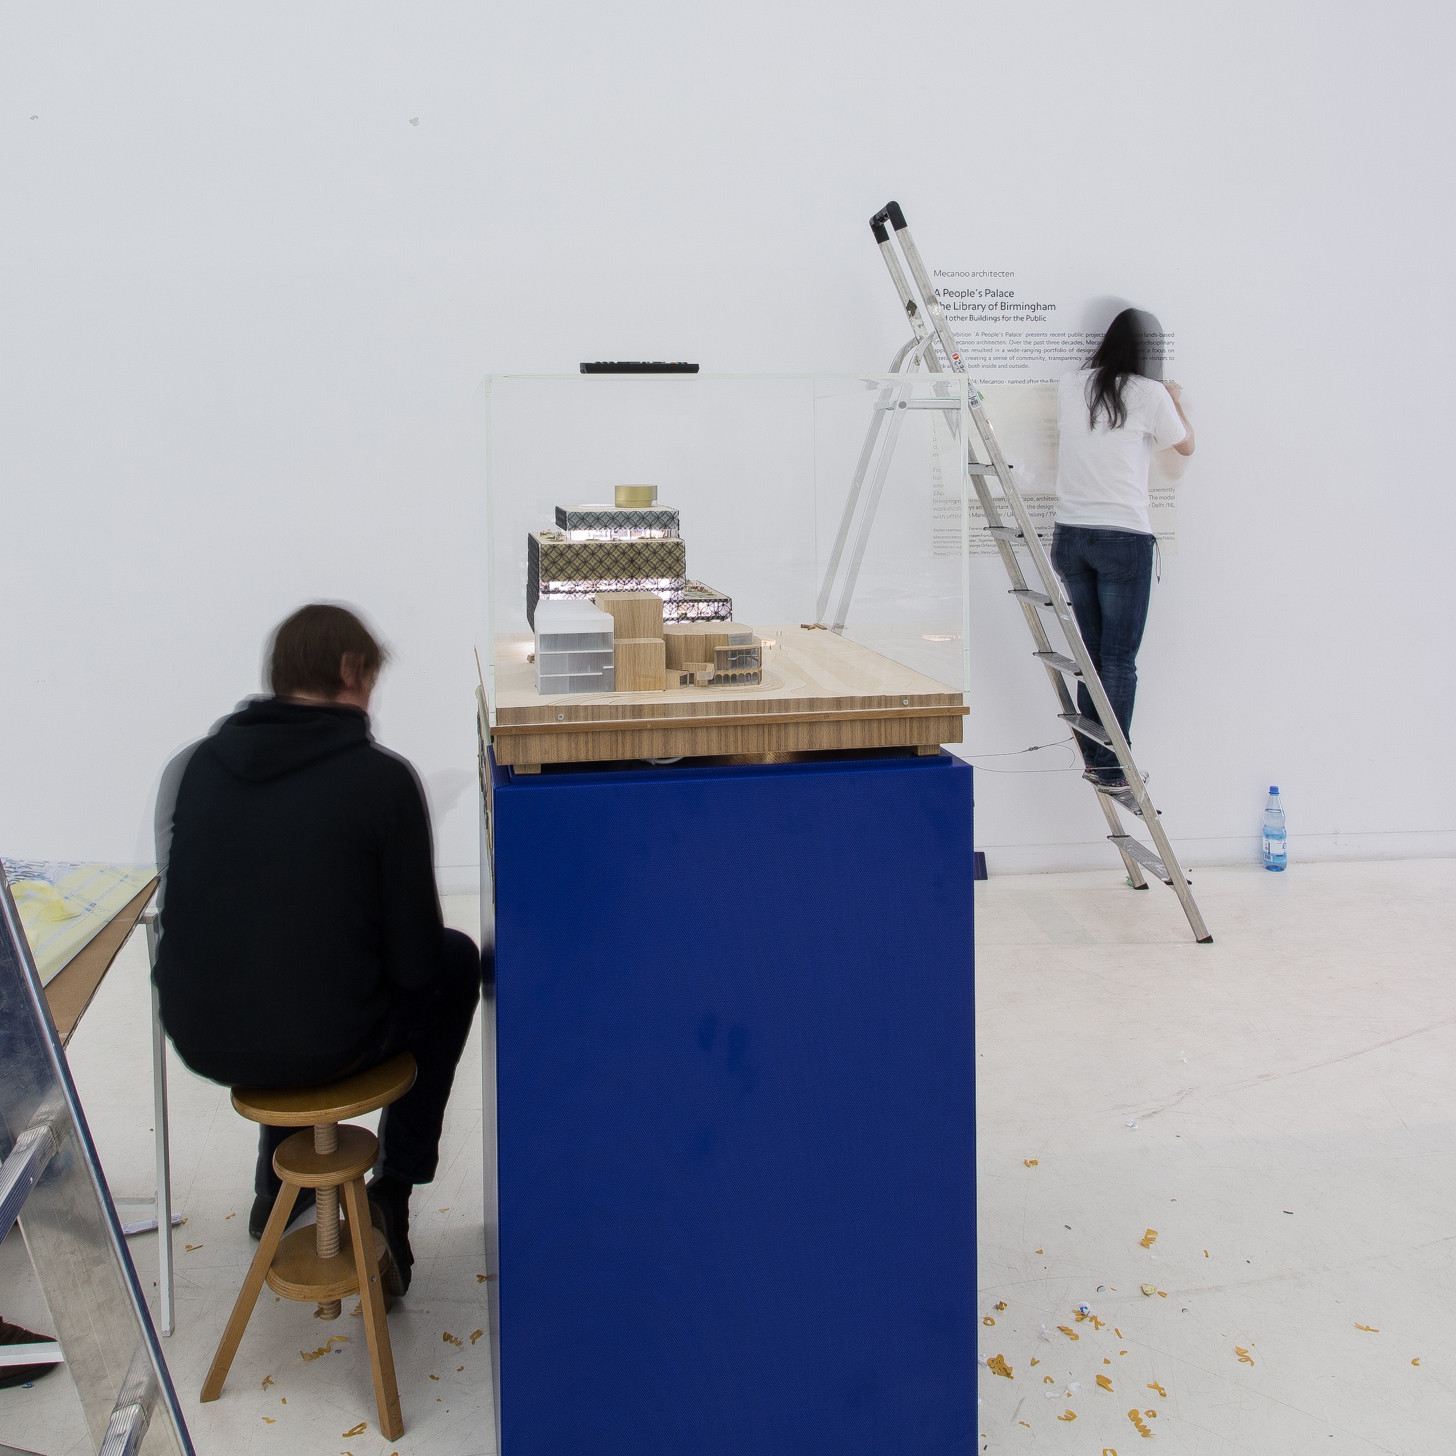 'People's Palaces': Behind The Scenes at Mecanoo's Upcoming Exhibition in Berlin